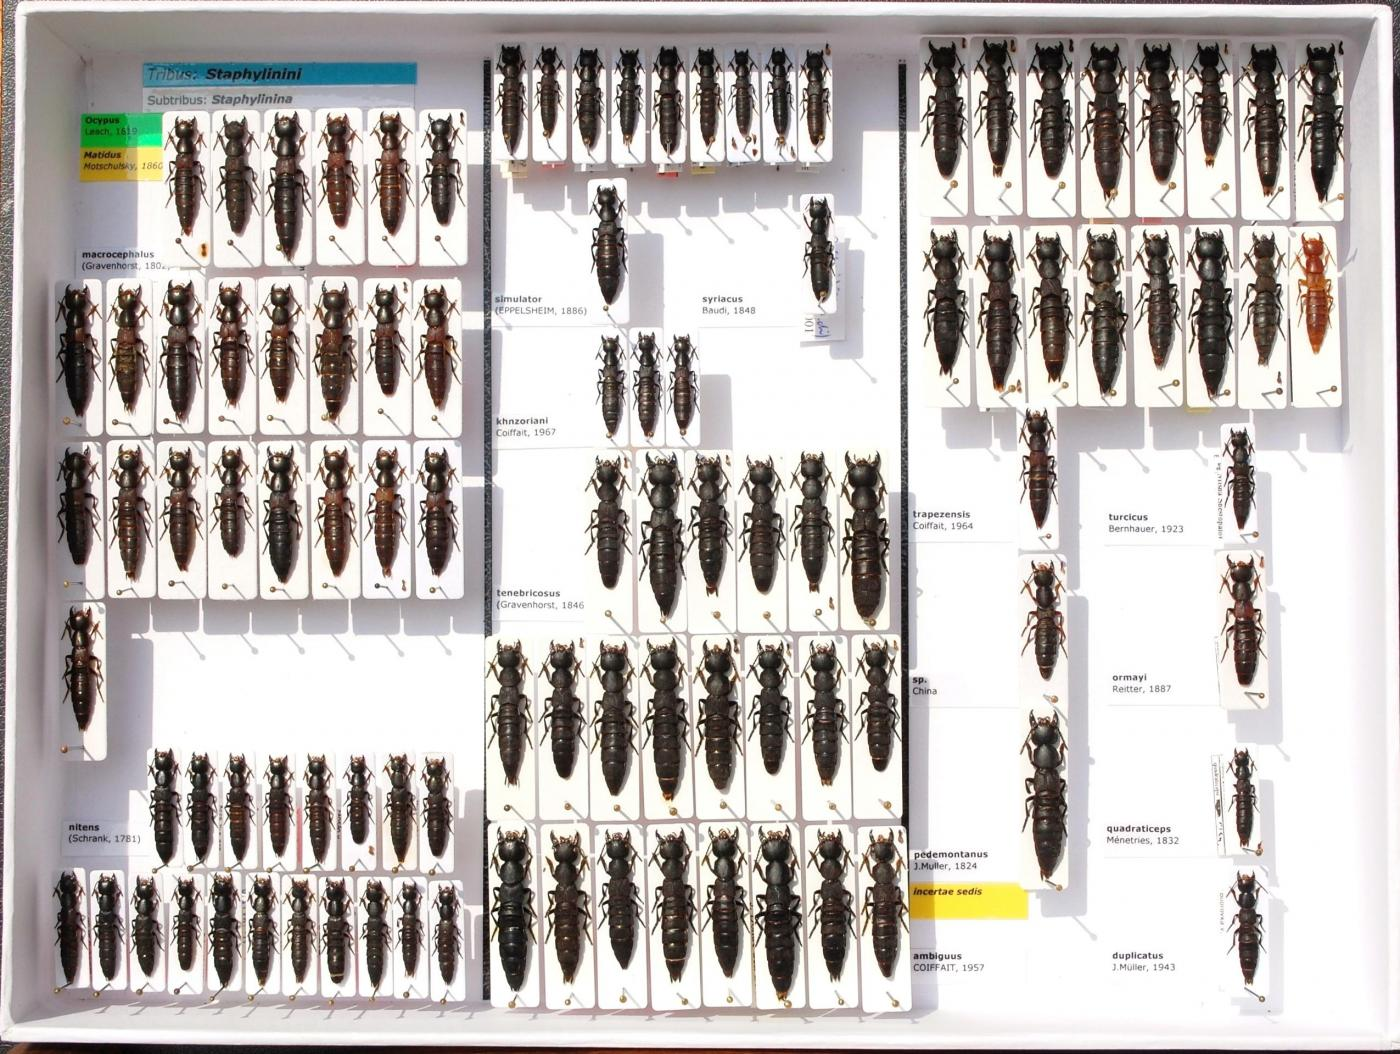 Staphylinidae_56.JPG - Attached Image (Click thumbnail to expand)